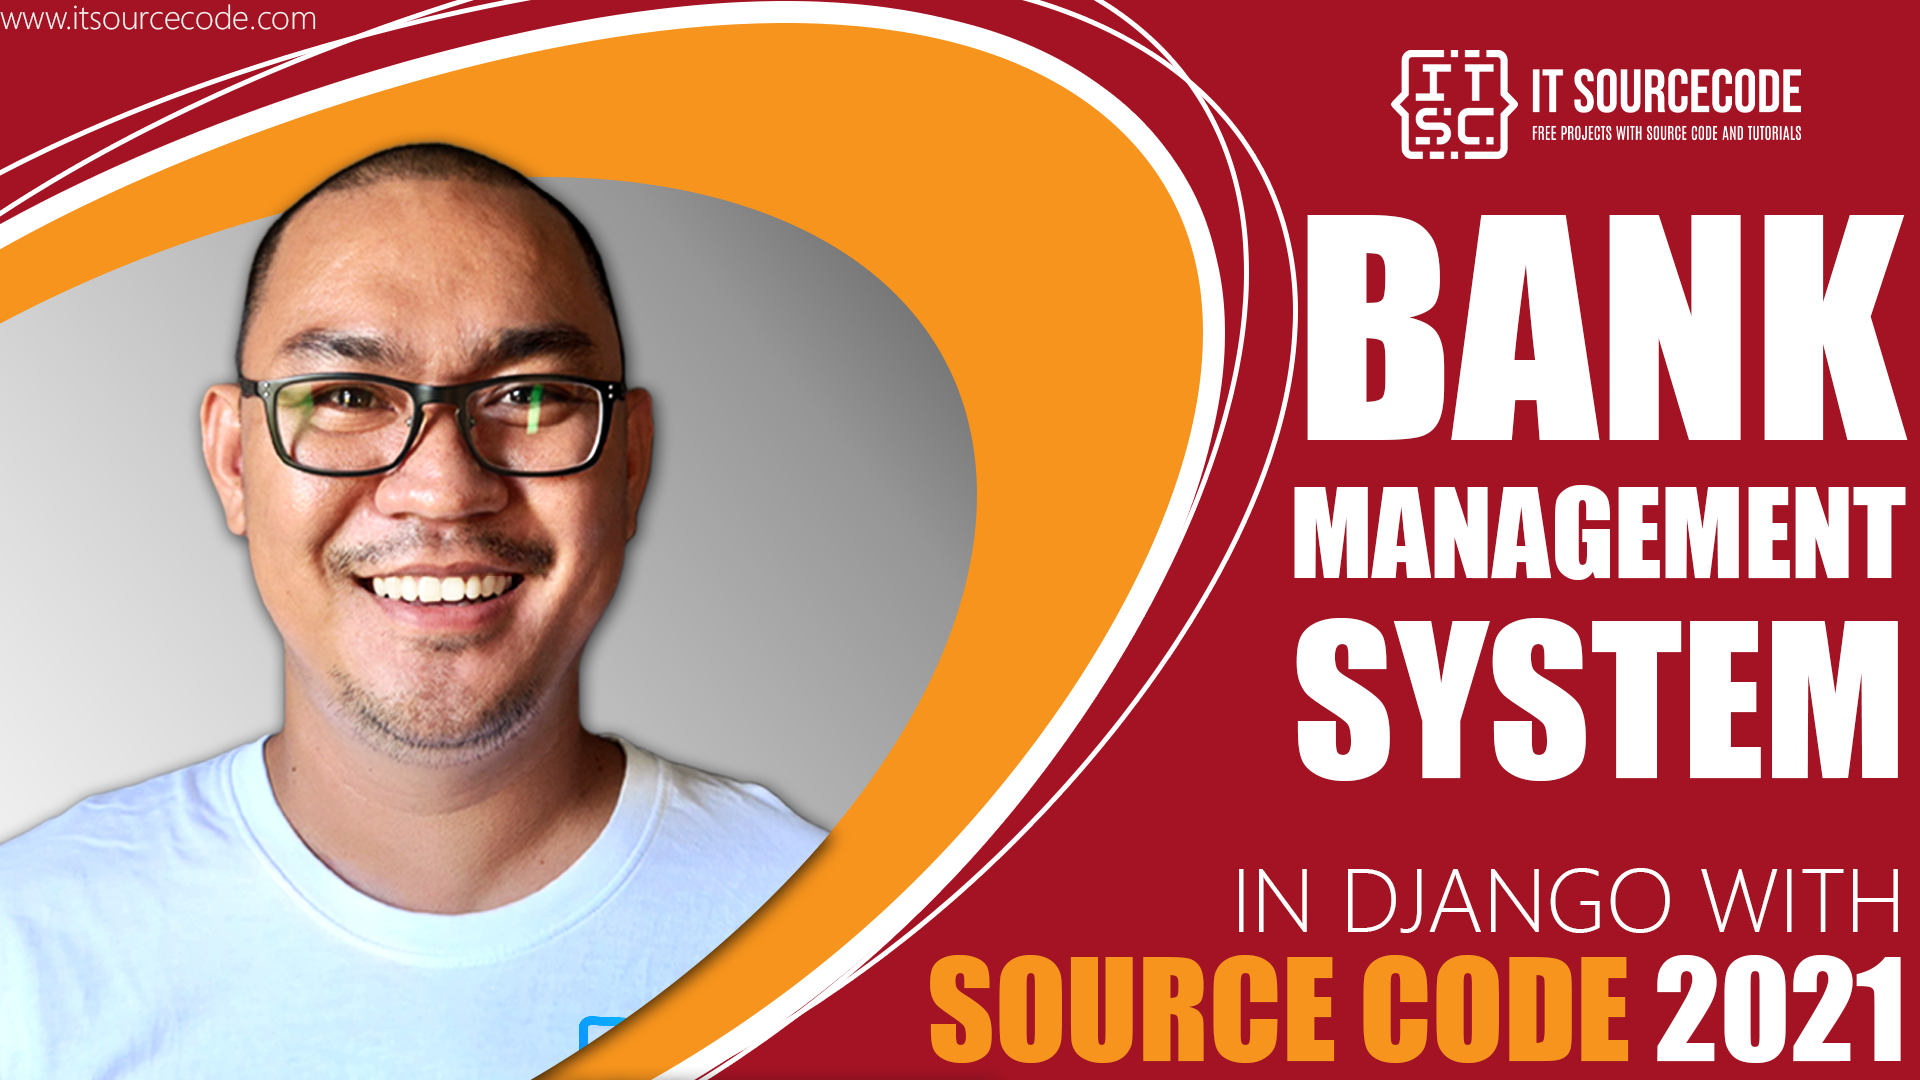 Bank Management System in Django with Source Code 2021